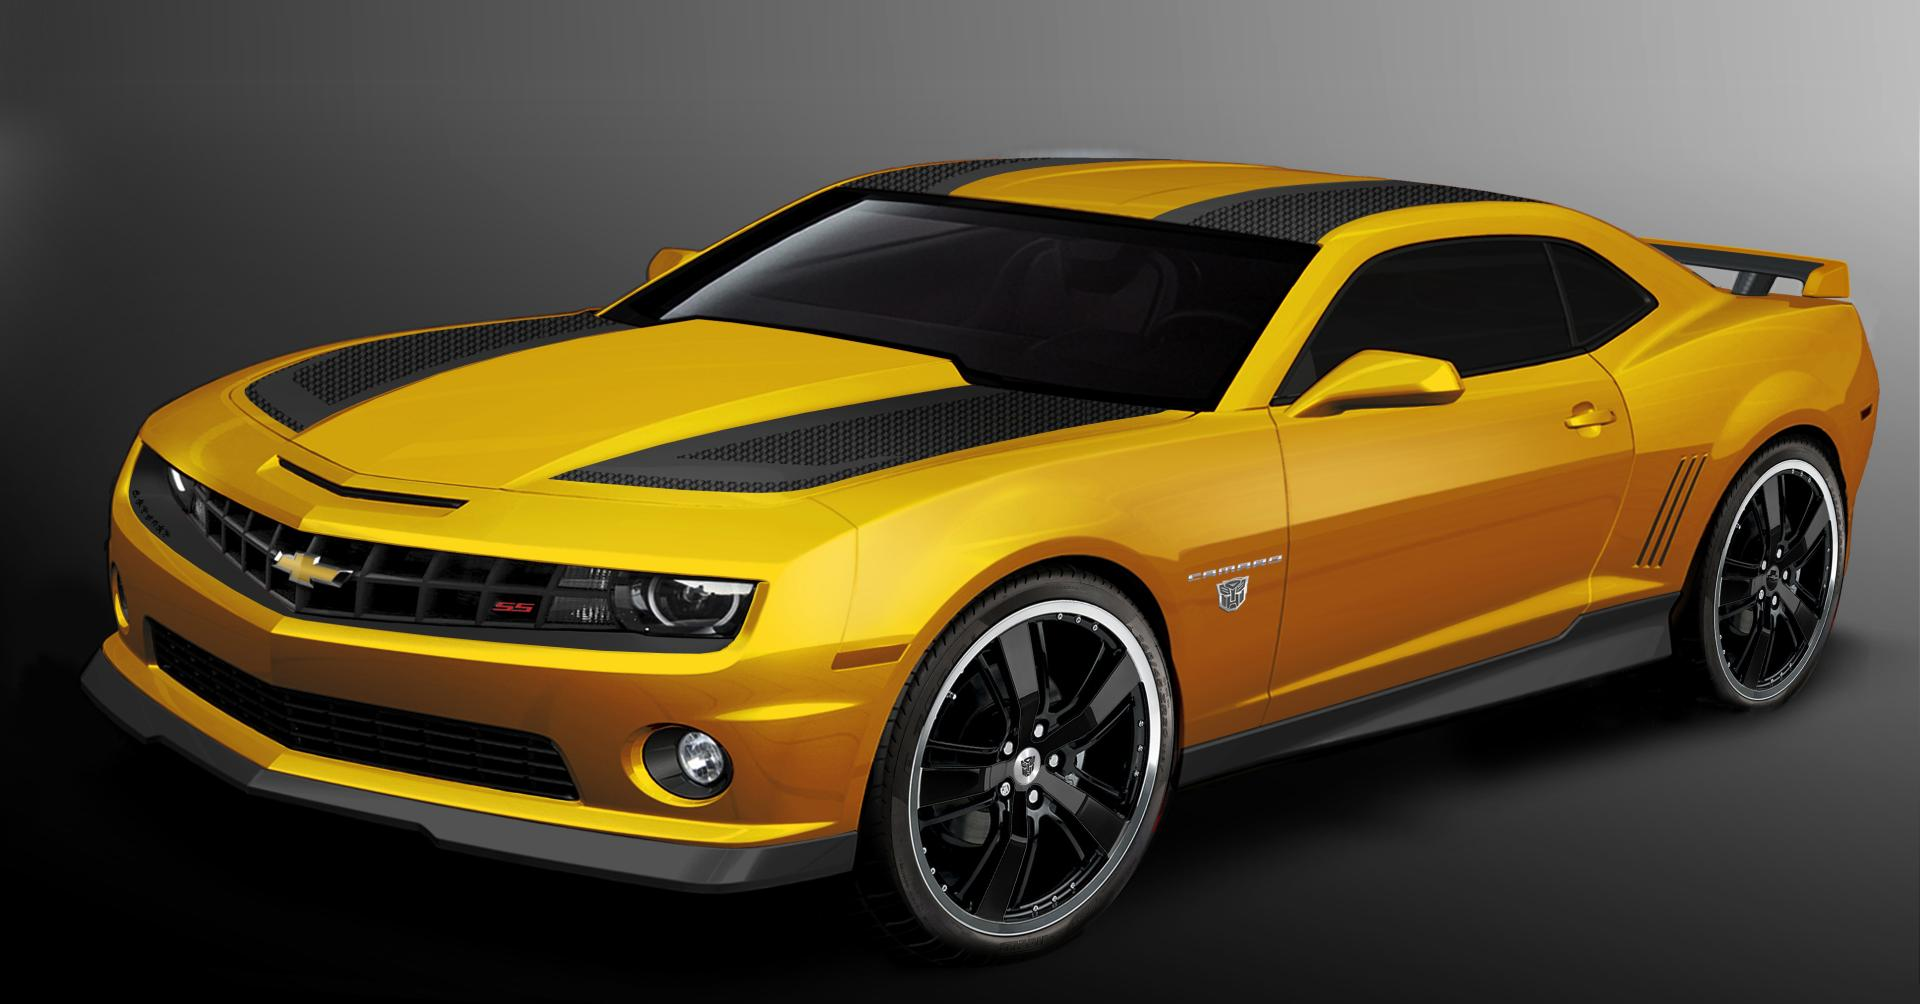 2011 chevrolet camaro bumblebee images photo chevy camaro bumblebee coupe image. Black Bedroom Furniture Sets. Home Design Ideas